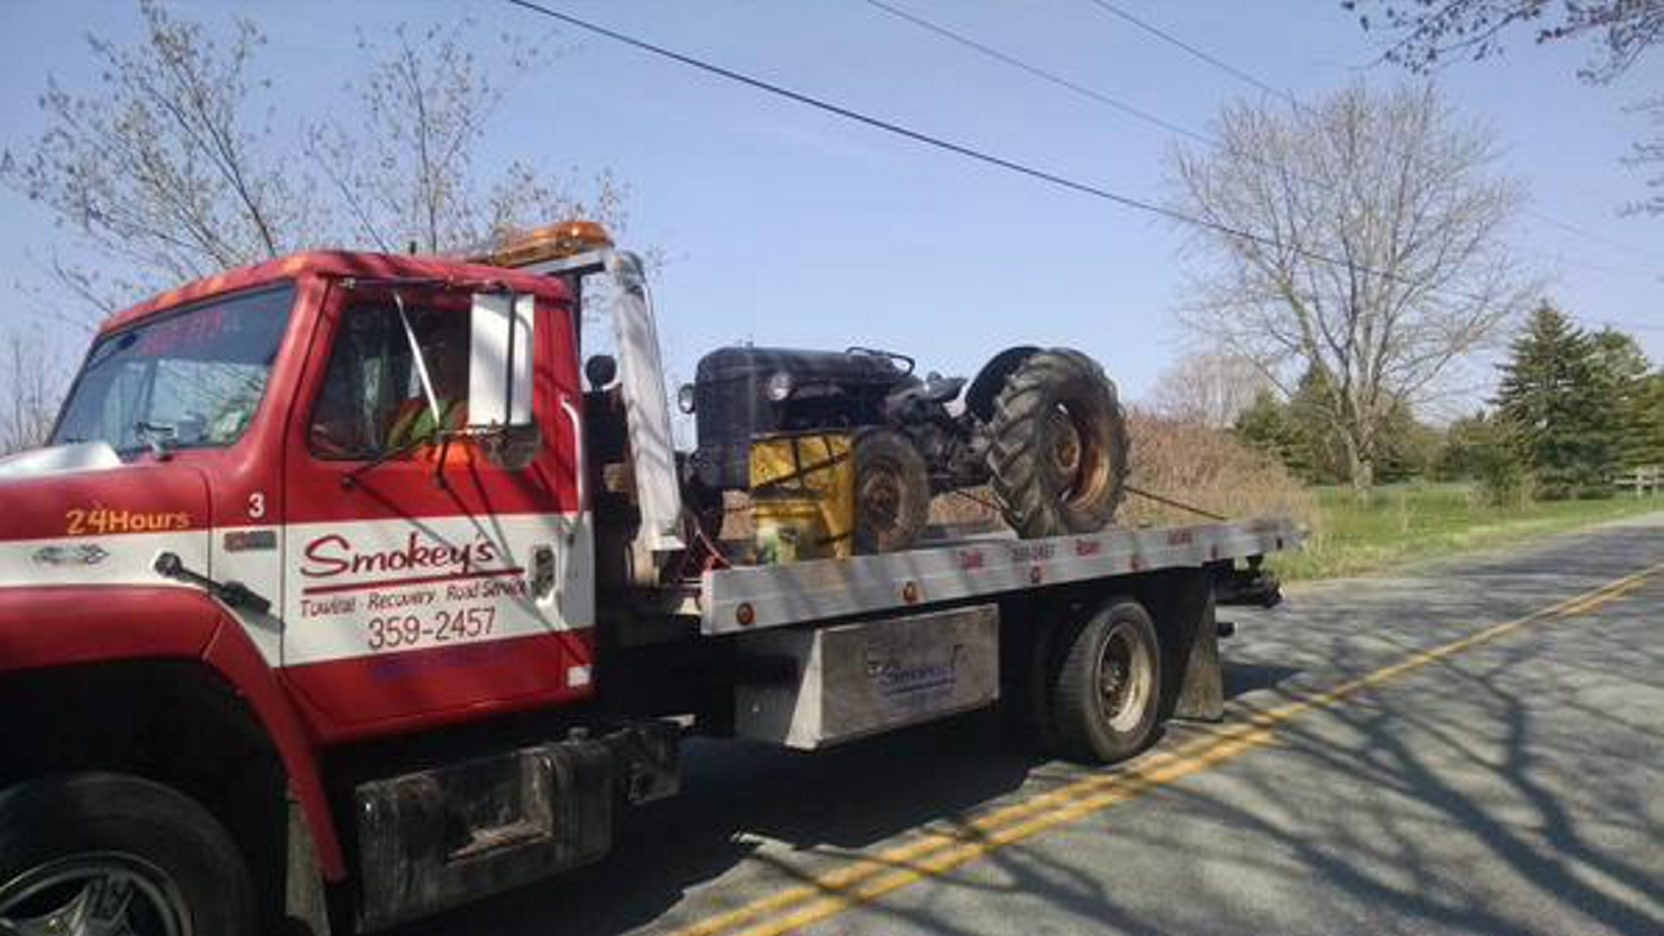 A flatbed truck hauls away the tractor and the pine tree from Sunday accident in Wales that took two lives. (Joseph Popiolkowski/Special to The News)